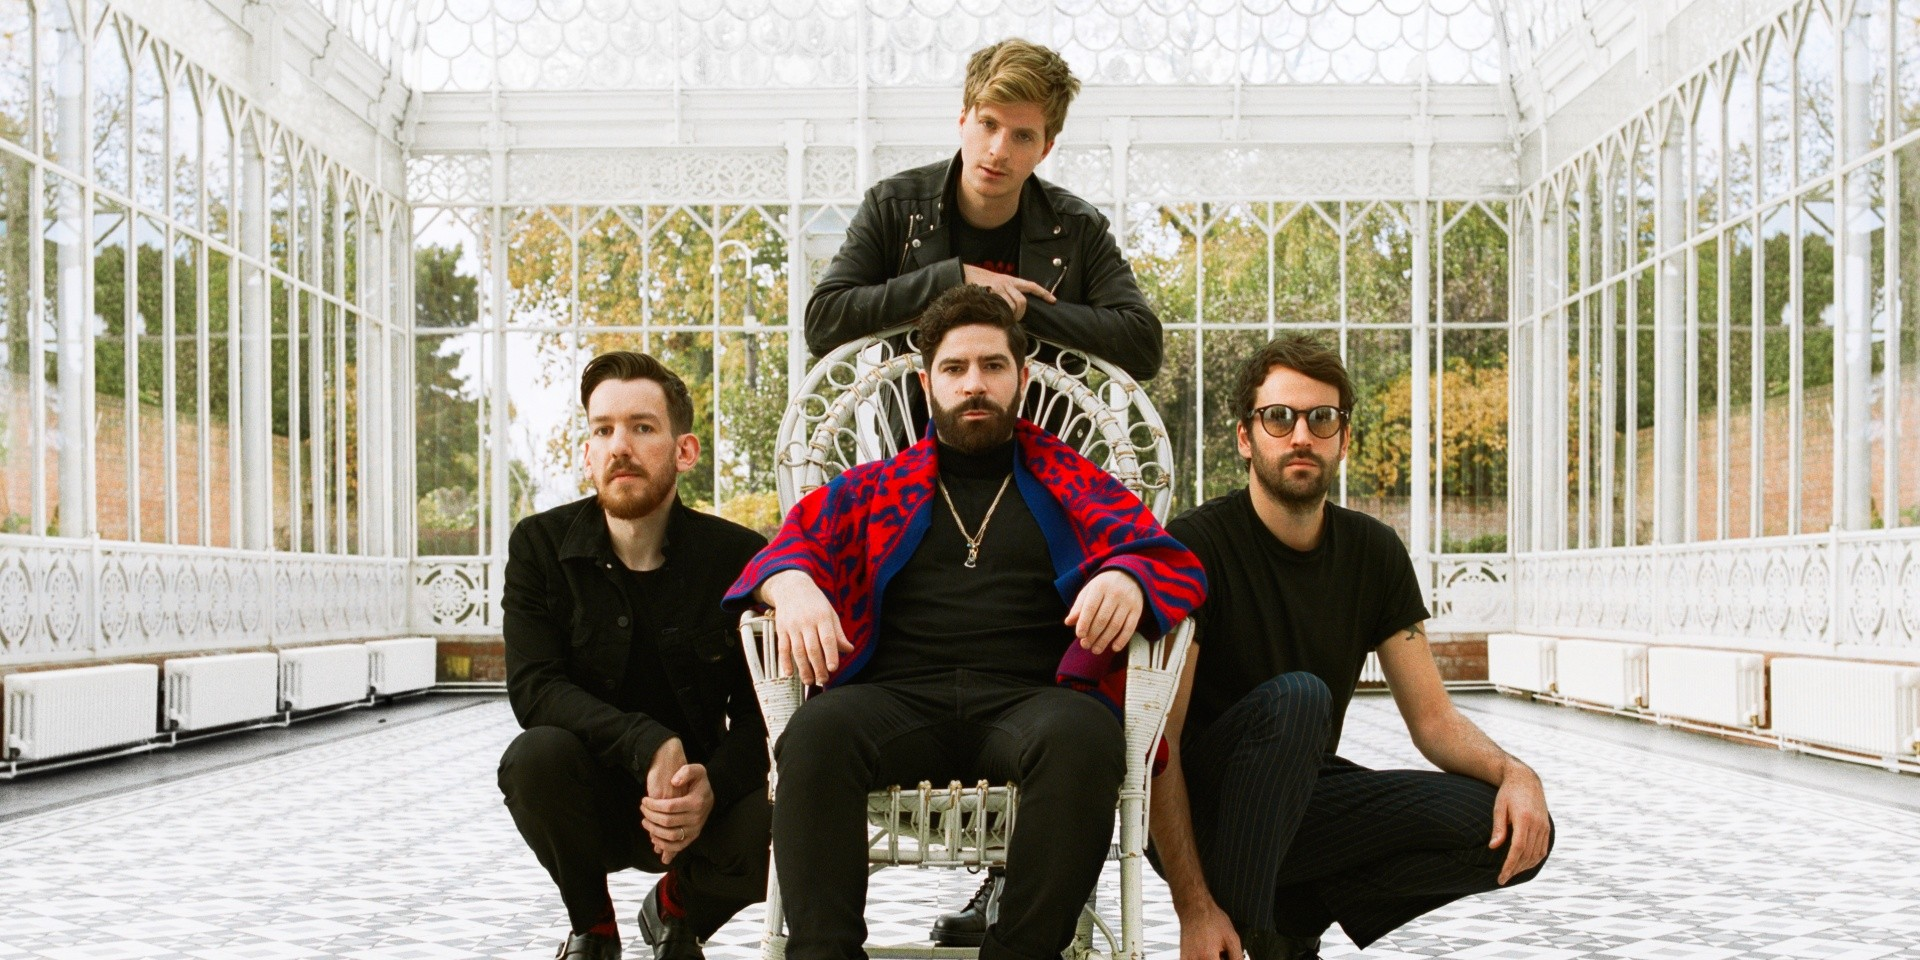 Foals releases haunting new single 'Into the Surf'